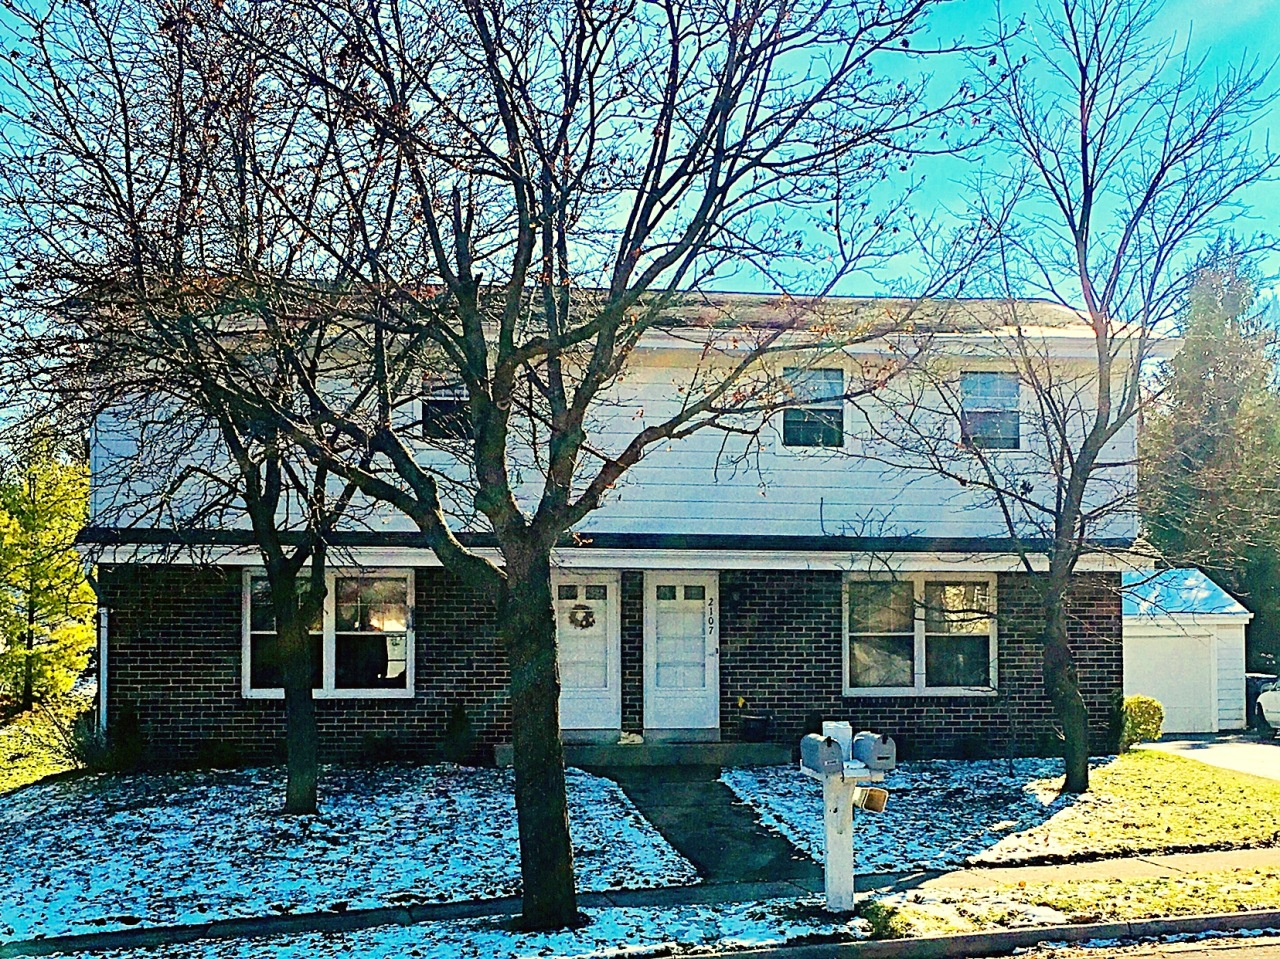 2105 Kilps Dr, Waukesha, Wisconsin 53188, 3 Bedrooms Bedrooms, 7 Rooms Rooms,1 BathroomBathrooms,Two-Family,For Sale,Kilps Dr,1,1614220